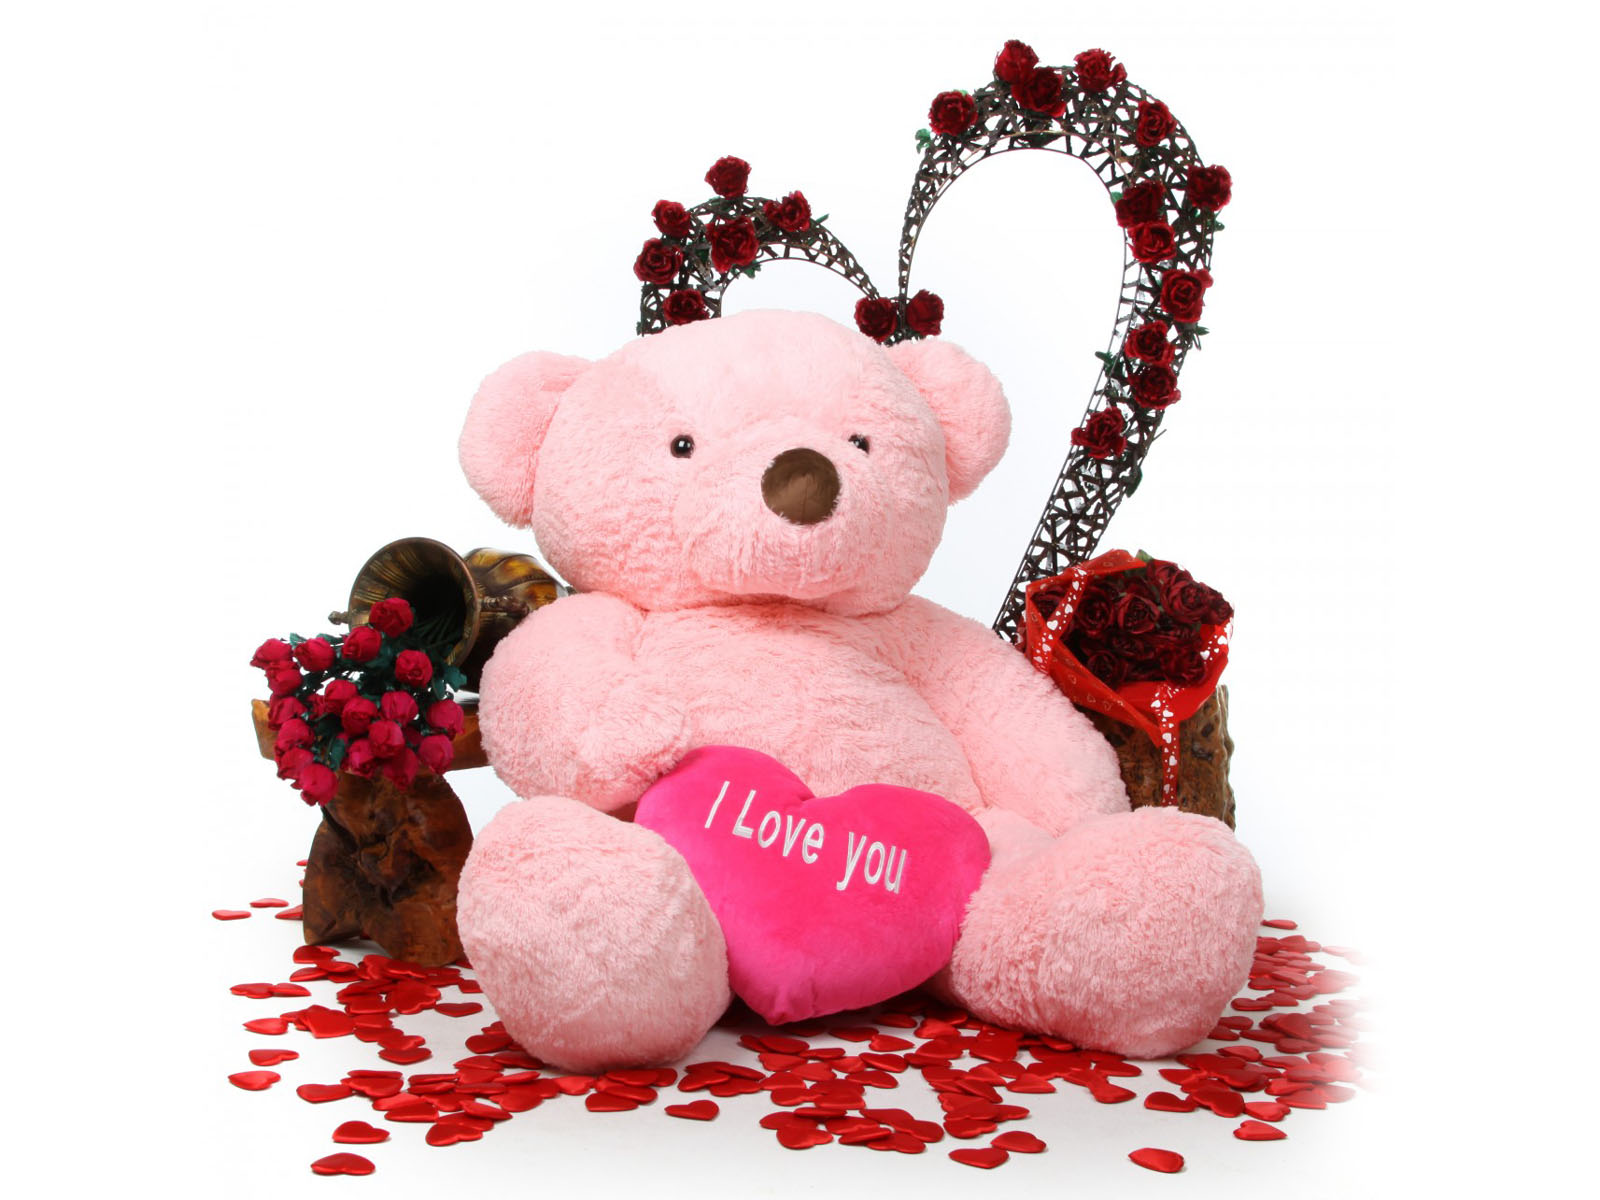 Love Wallpaper Gift : wallpapers: Love Teddy Bear Wallpapers